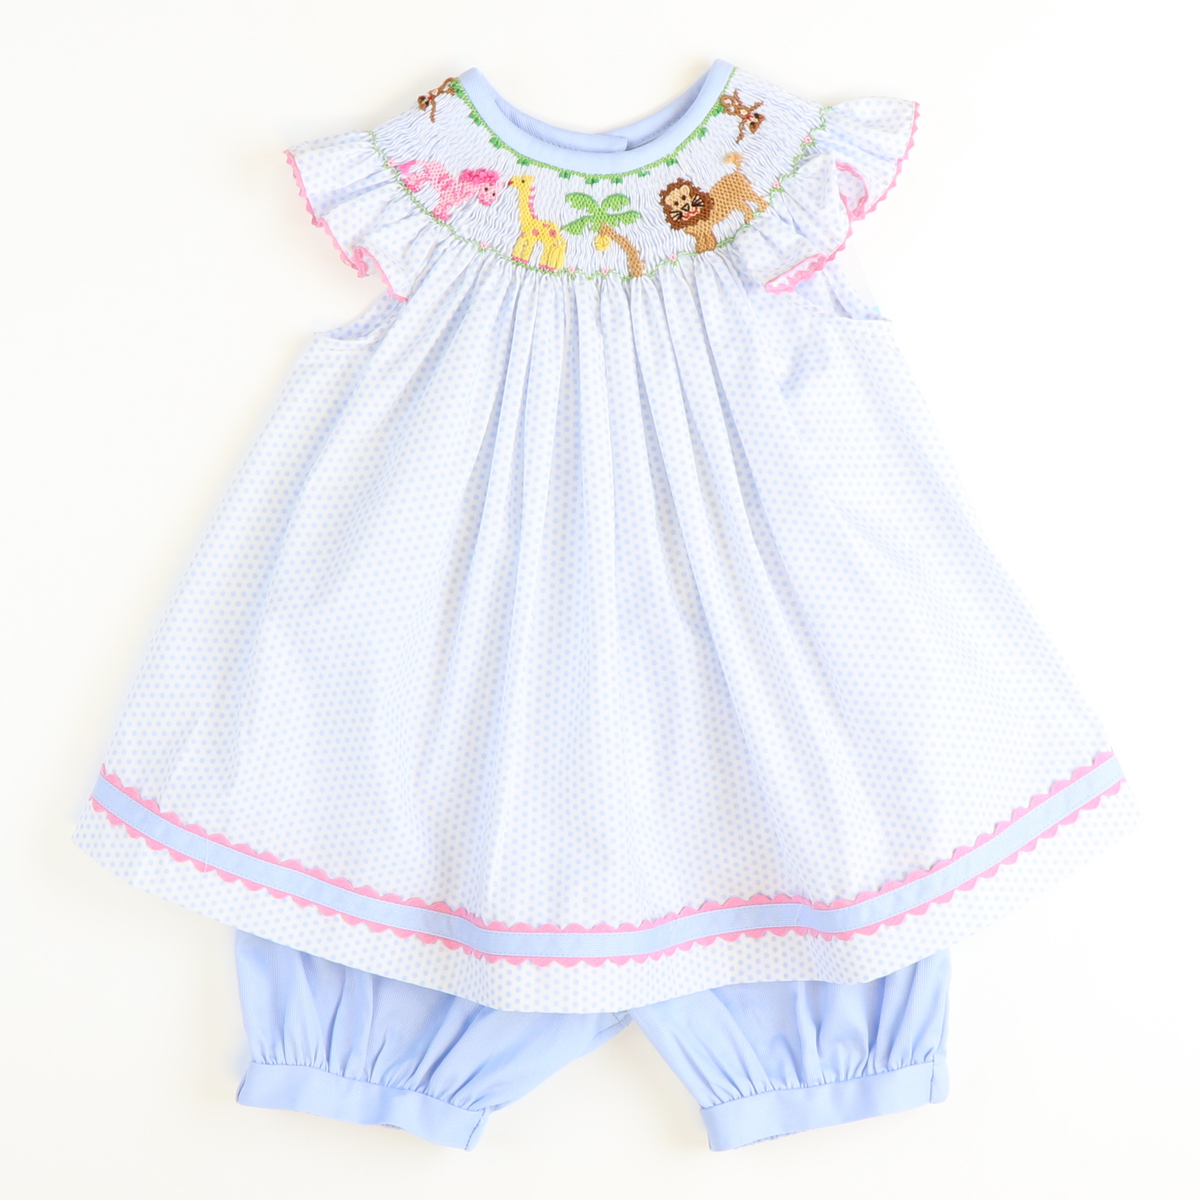 Smocked Zoo Top & Bloomer Set - Light Blue Dot